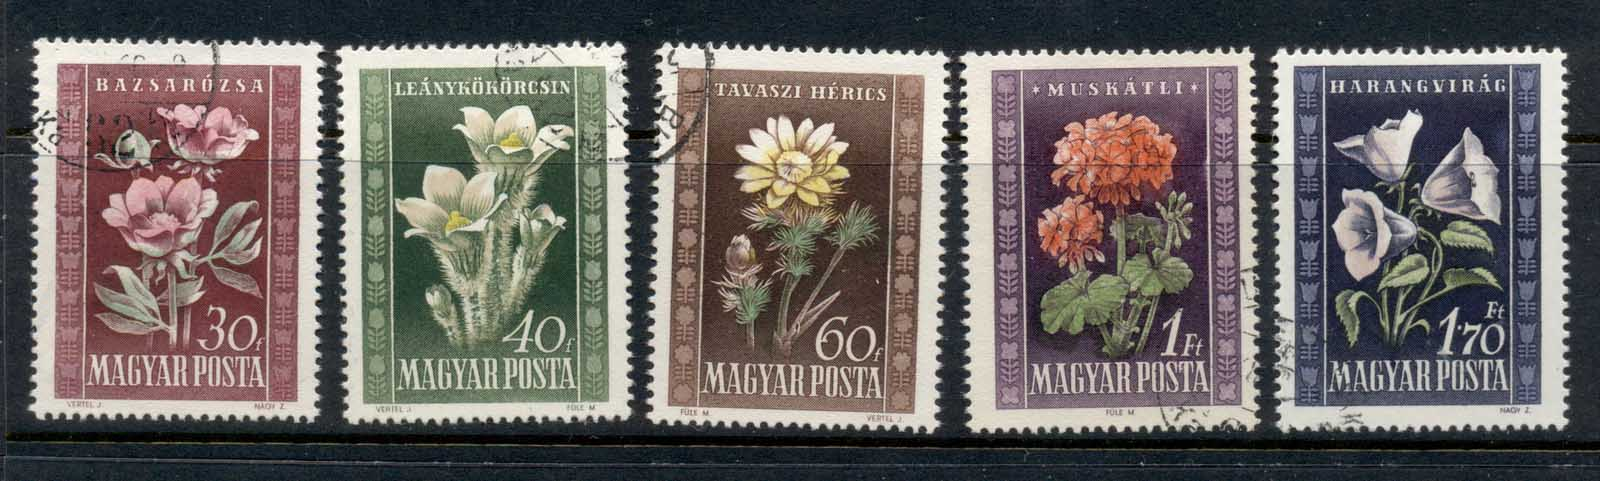 Hungary 1950 Flowers FU